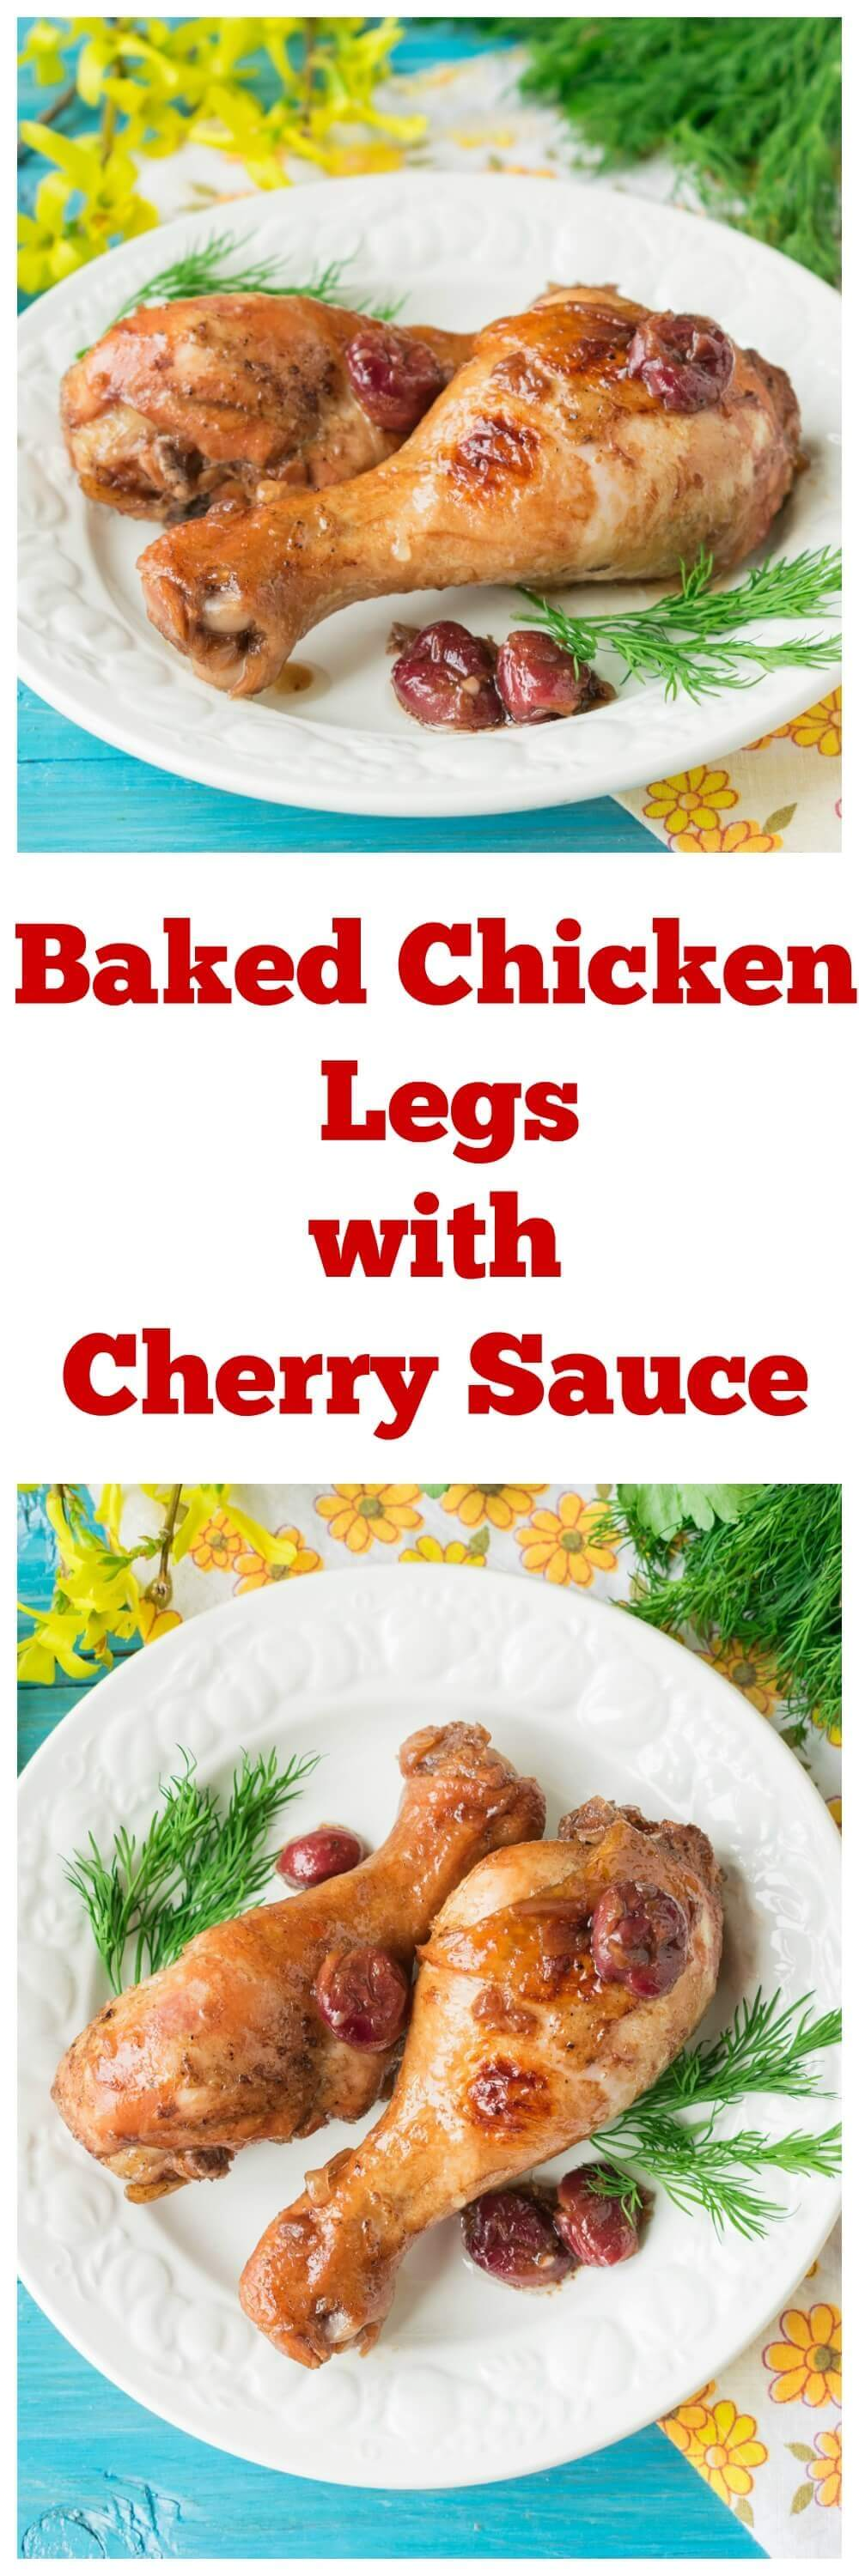 Baked Chicken Legs with Cherry Sauce